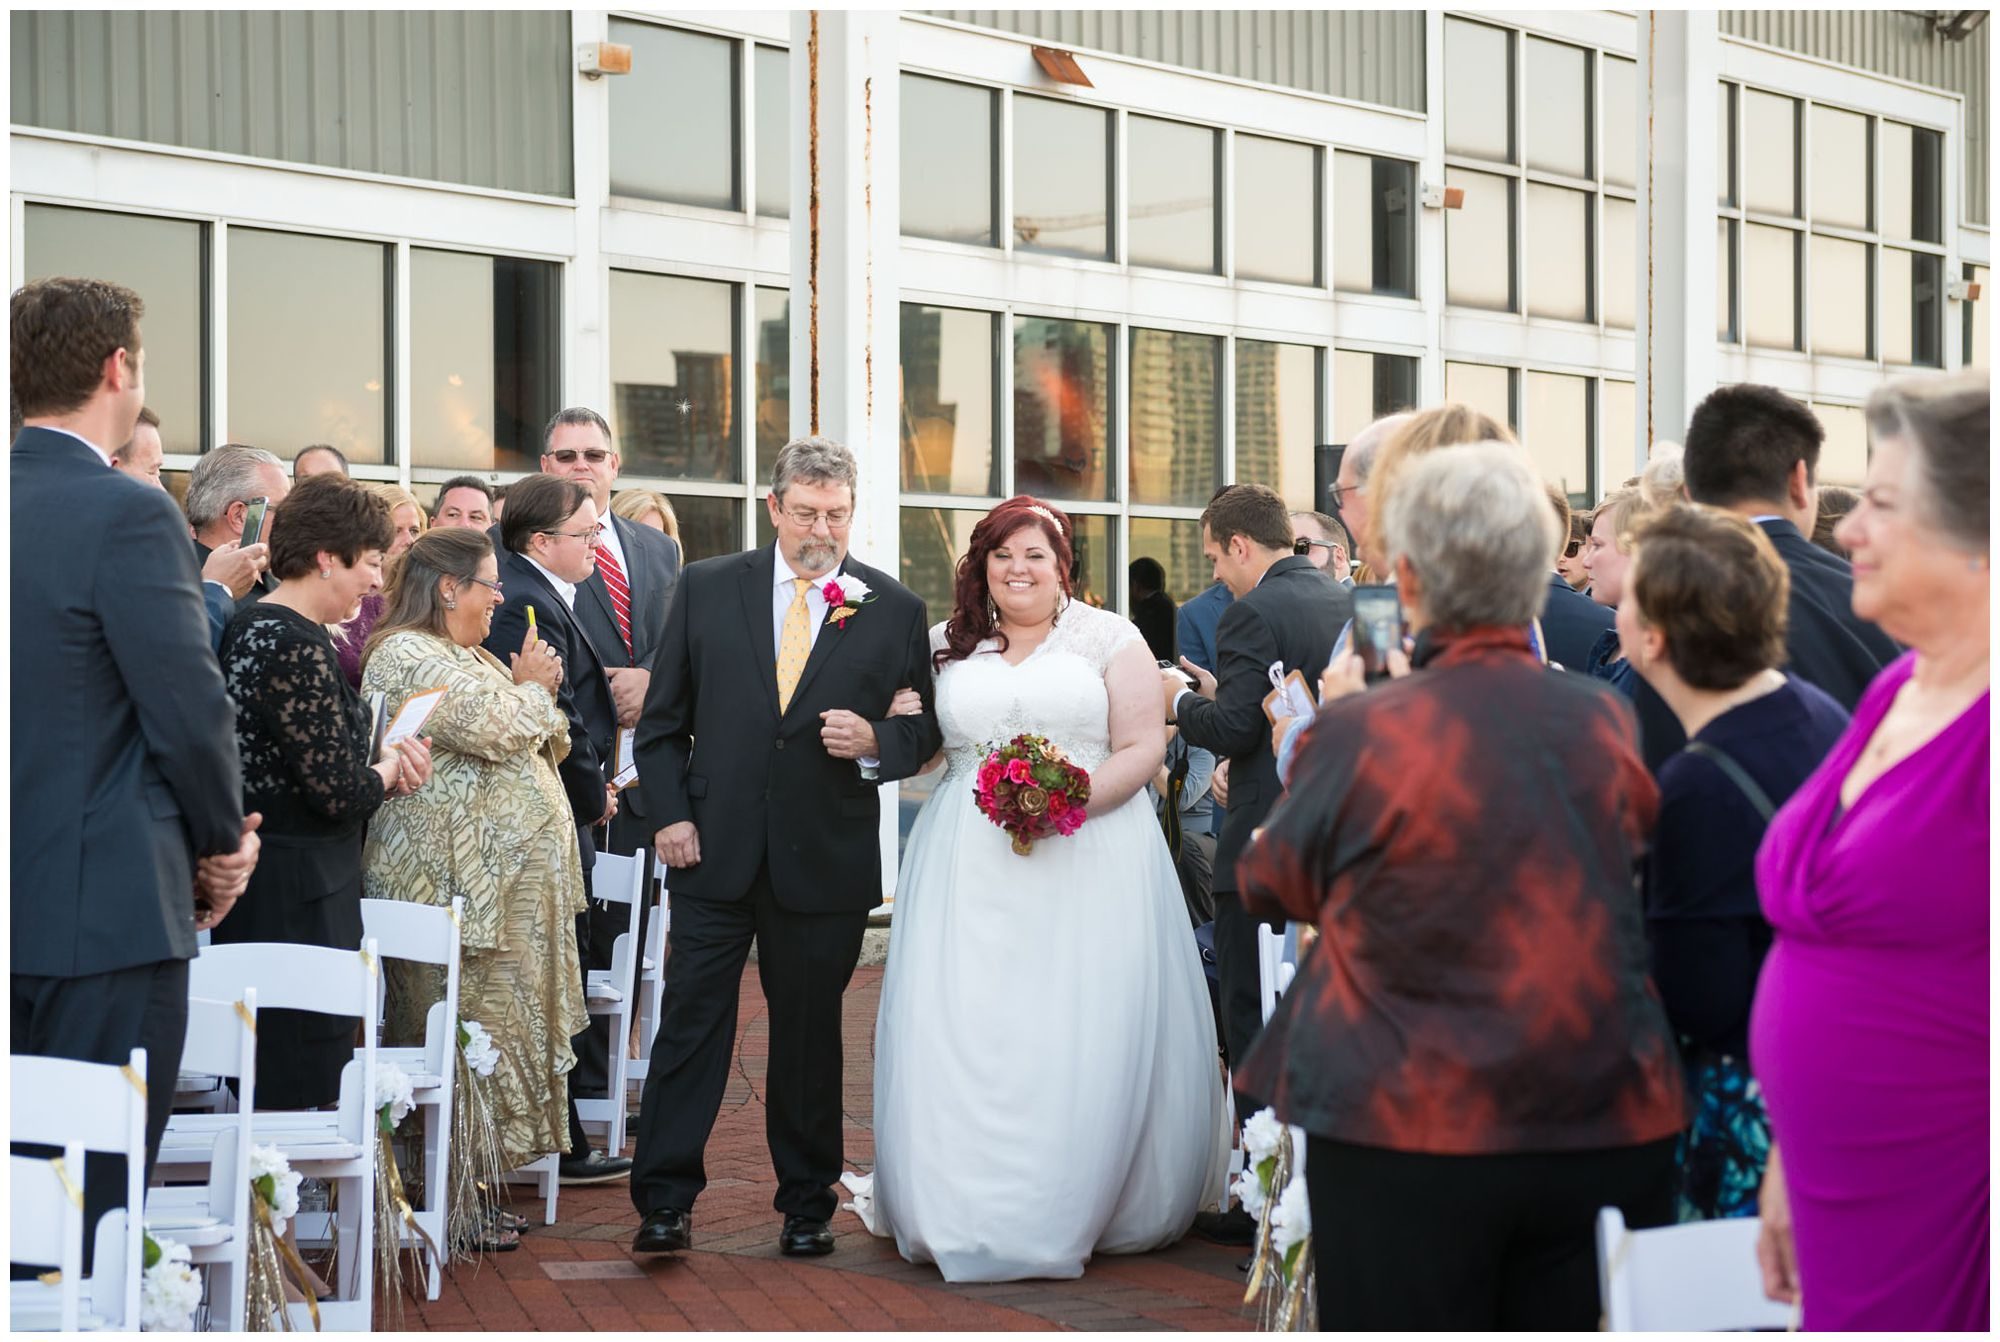 Bride entering with dad during harbor wedding at Baltimore Museum of Industry